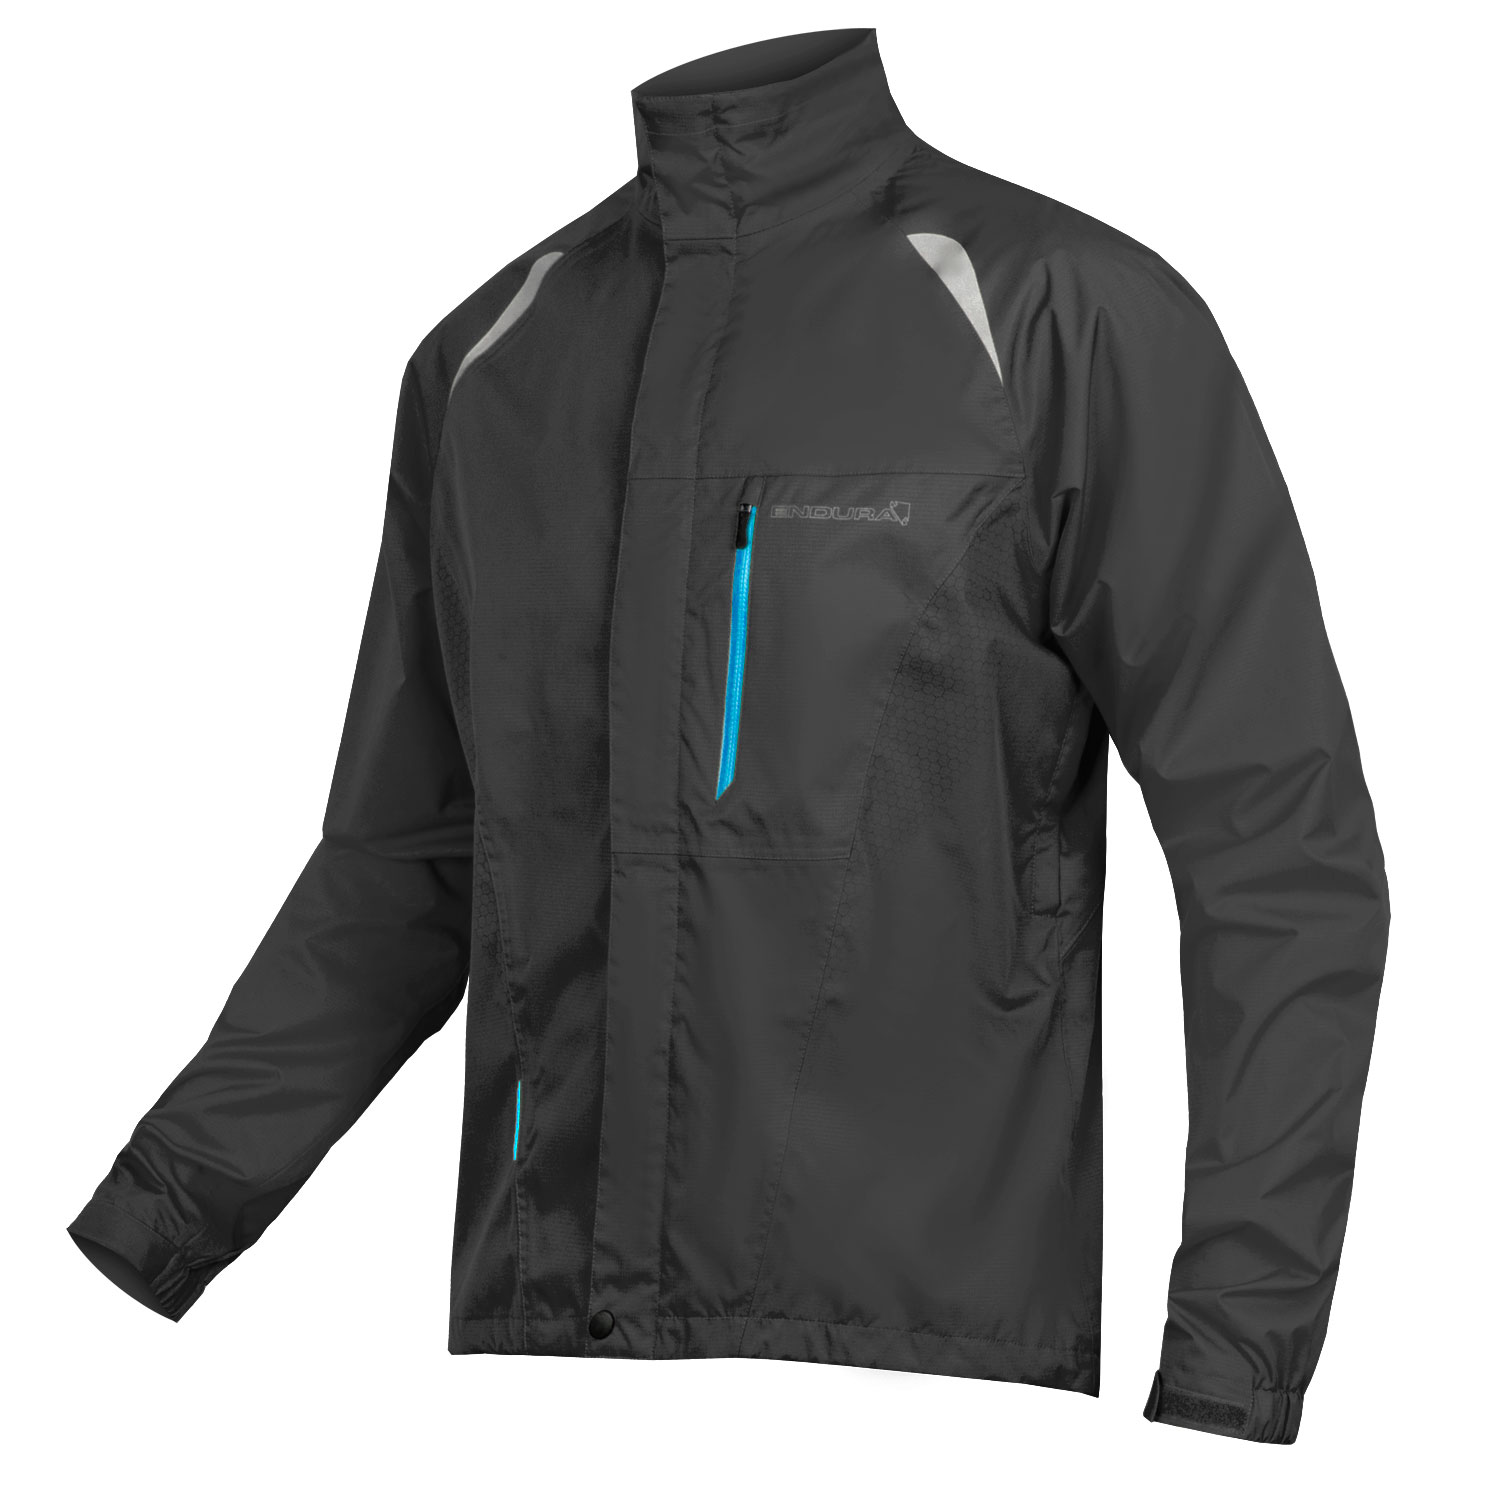 Gridlock II Waterproof Jacket Black